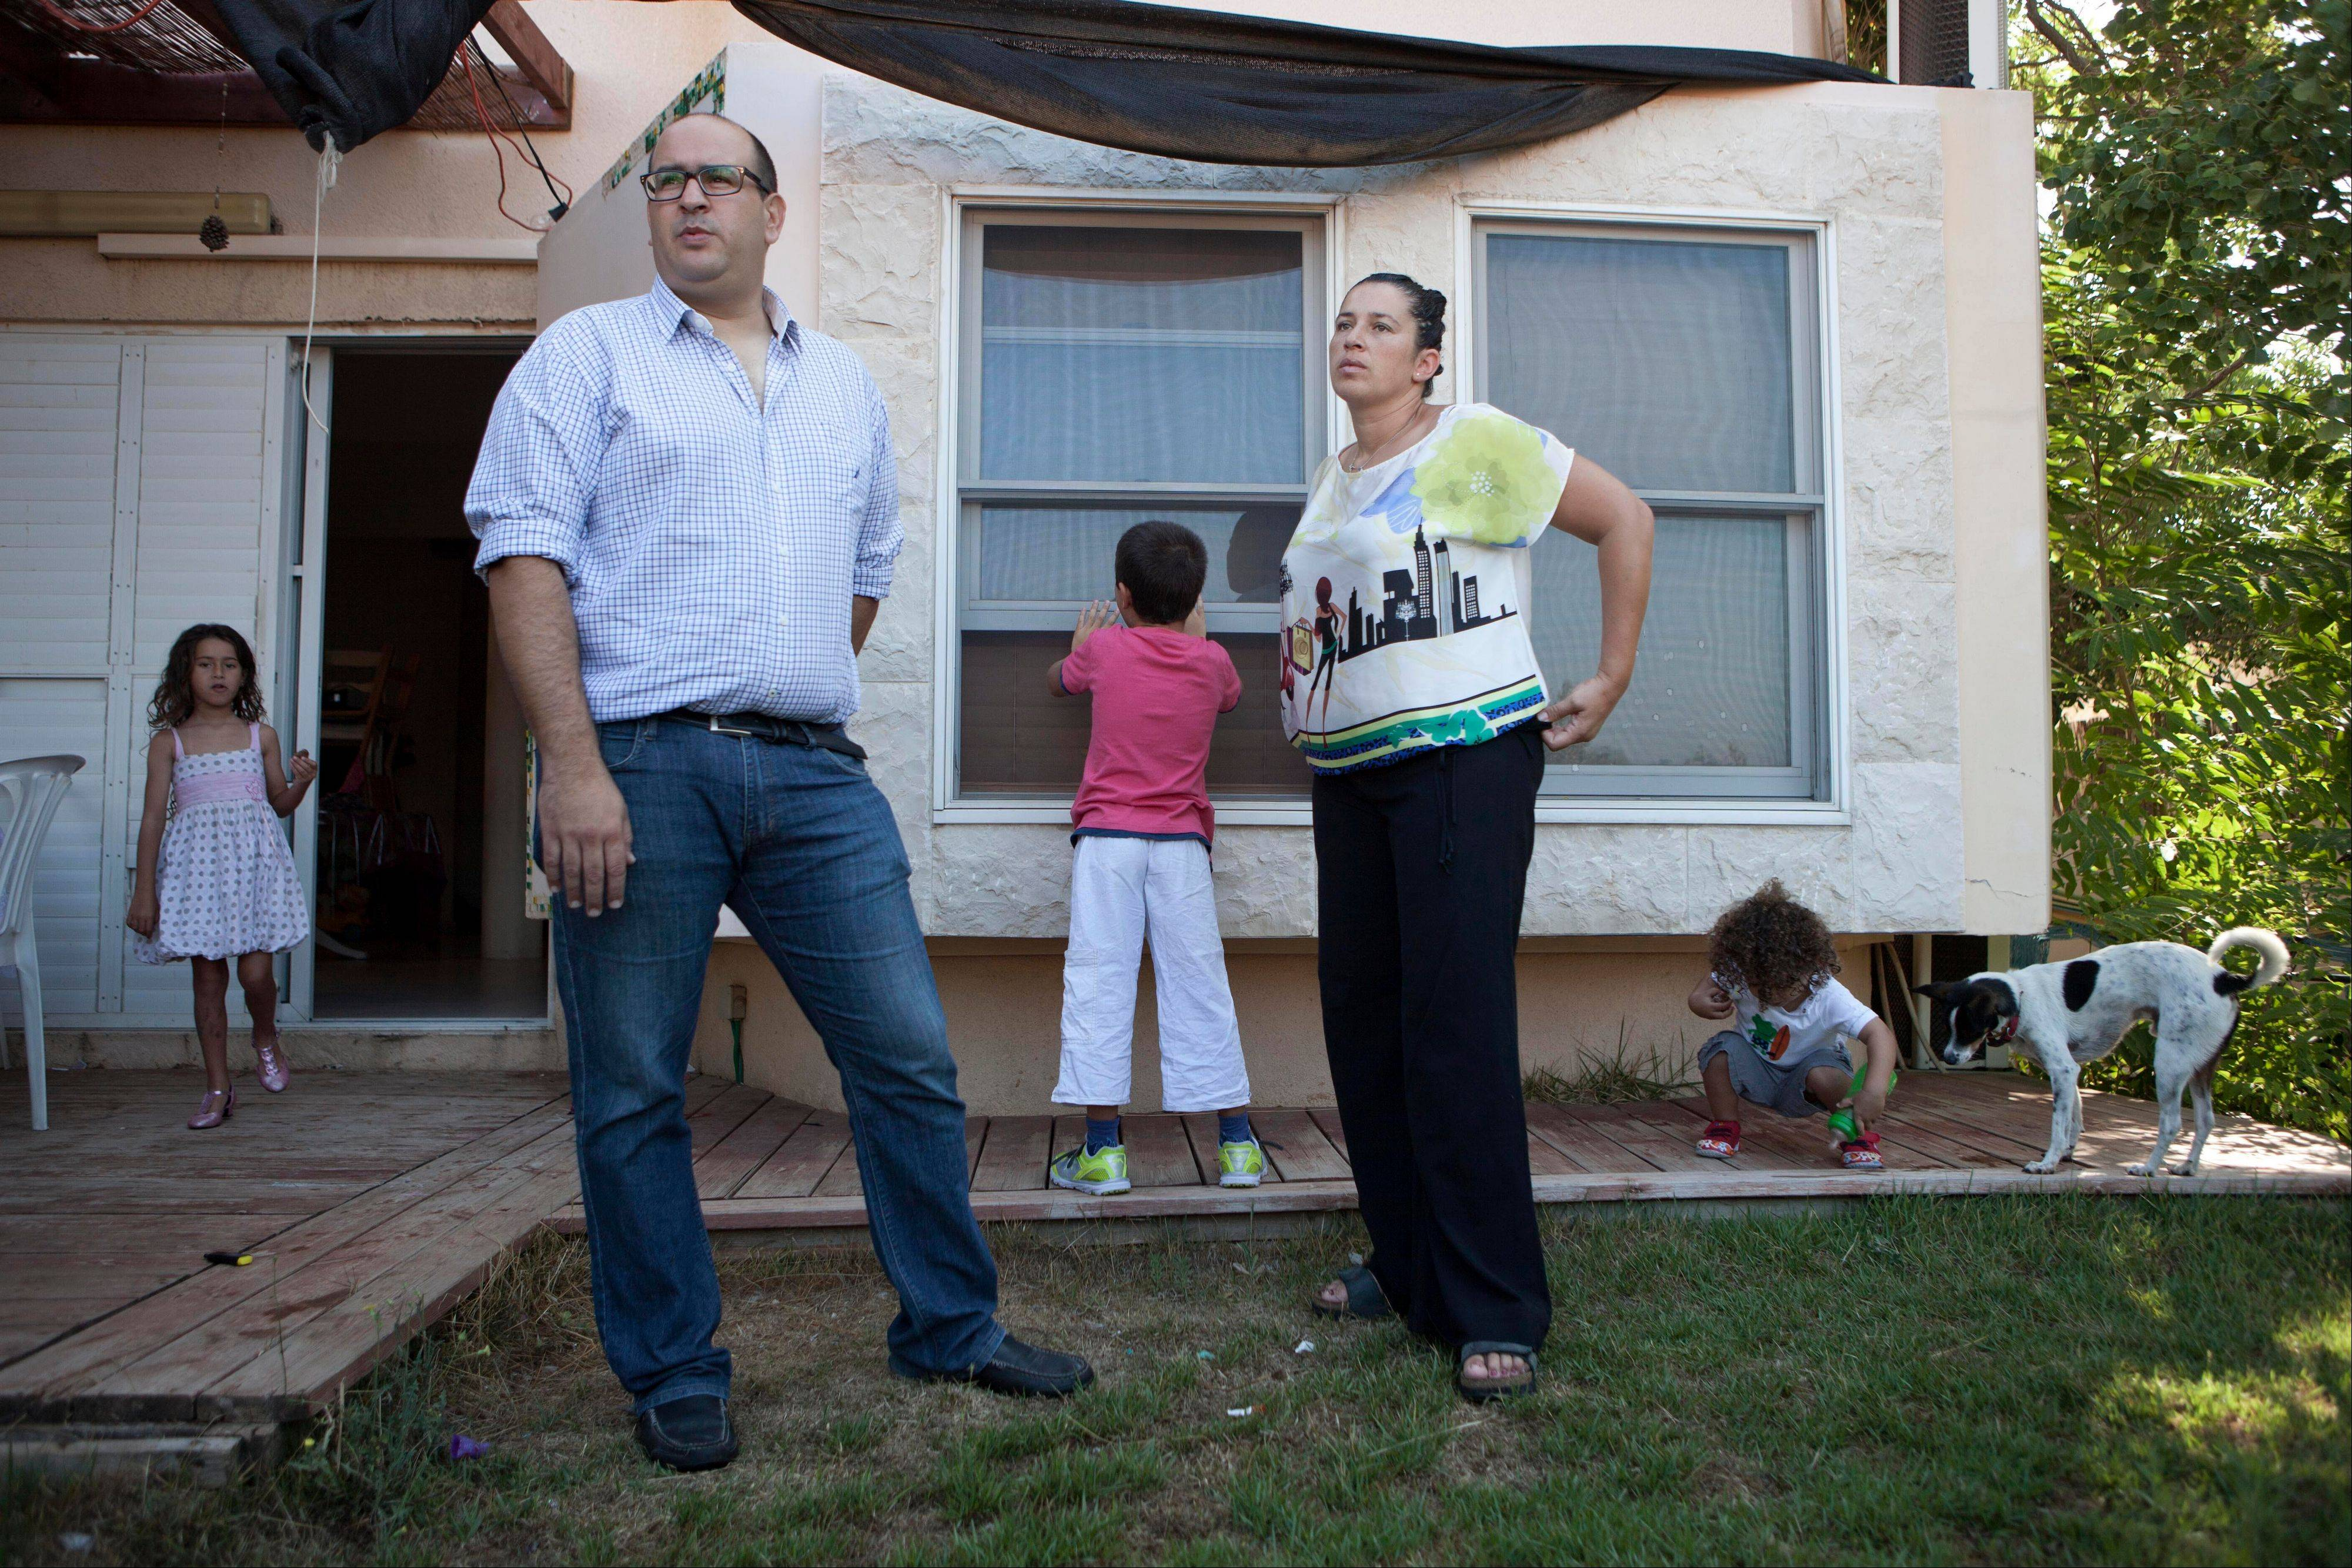 In this Sunday, Aug. 11, photo, Micha Drori, his wife, Ora, and their children stand in the garden of their house at the settlement of Barkan in the West Bank. Israel has built dozens of settlements since 1967 that are now home to about 550,000 Israelis. Settlements dot the West Bank, the heartland of a future Palestine, and ring East Jerusalem, the Palestinians� hoped-for capital, making it ever more difficult to partition the land between two states. Jews now make up 17.5 percent of the population in both areas.